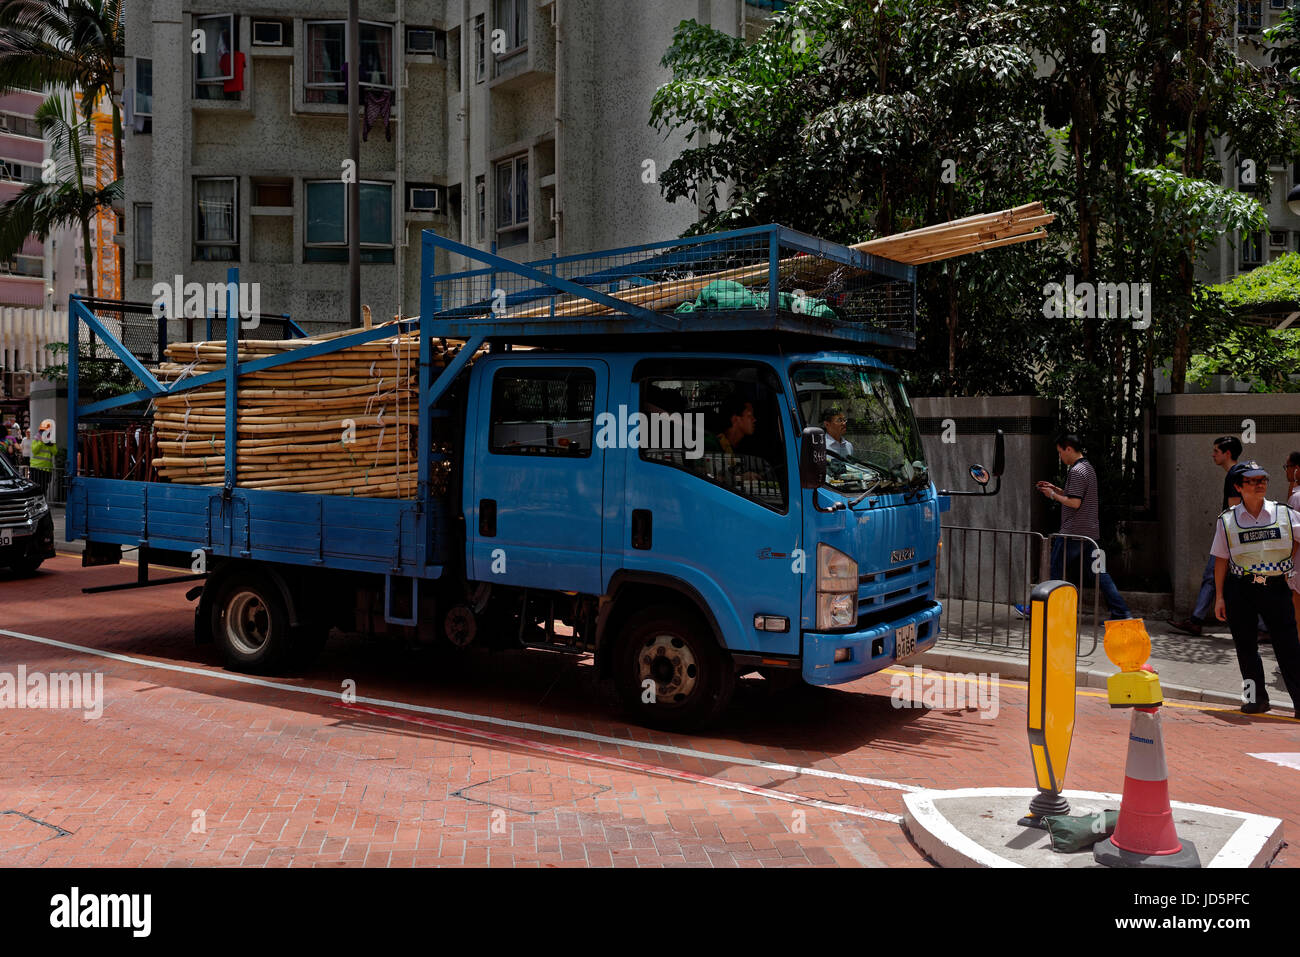 Delivery truck for bamboo scaffolding in Taikoo, Hong Kong - Stock Image